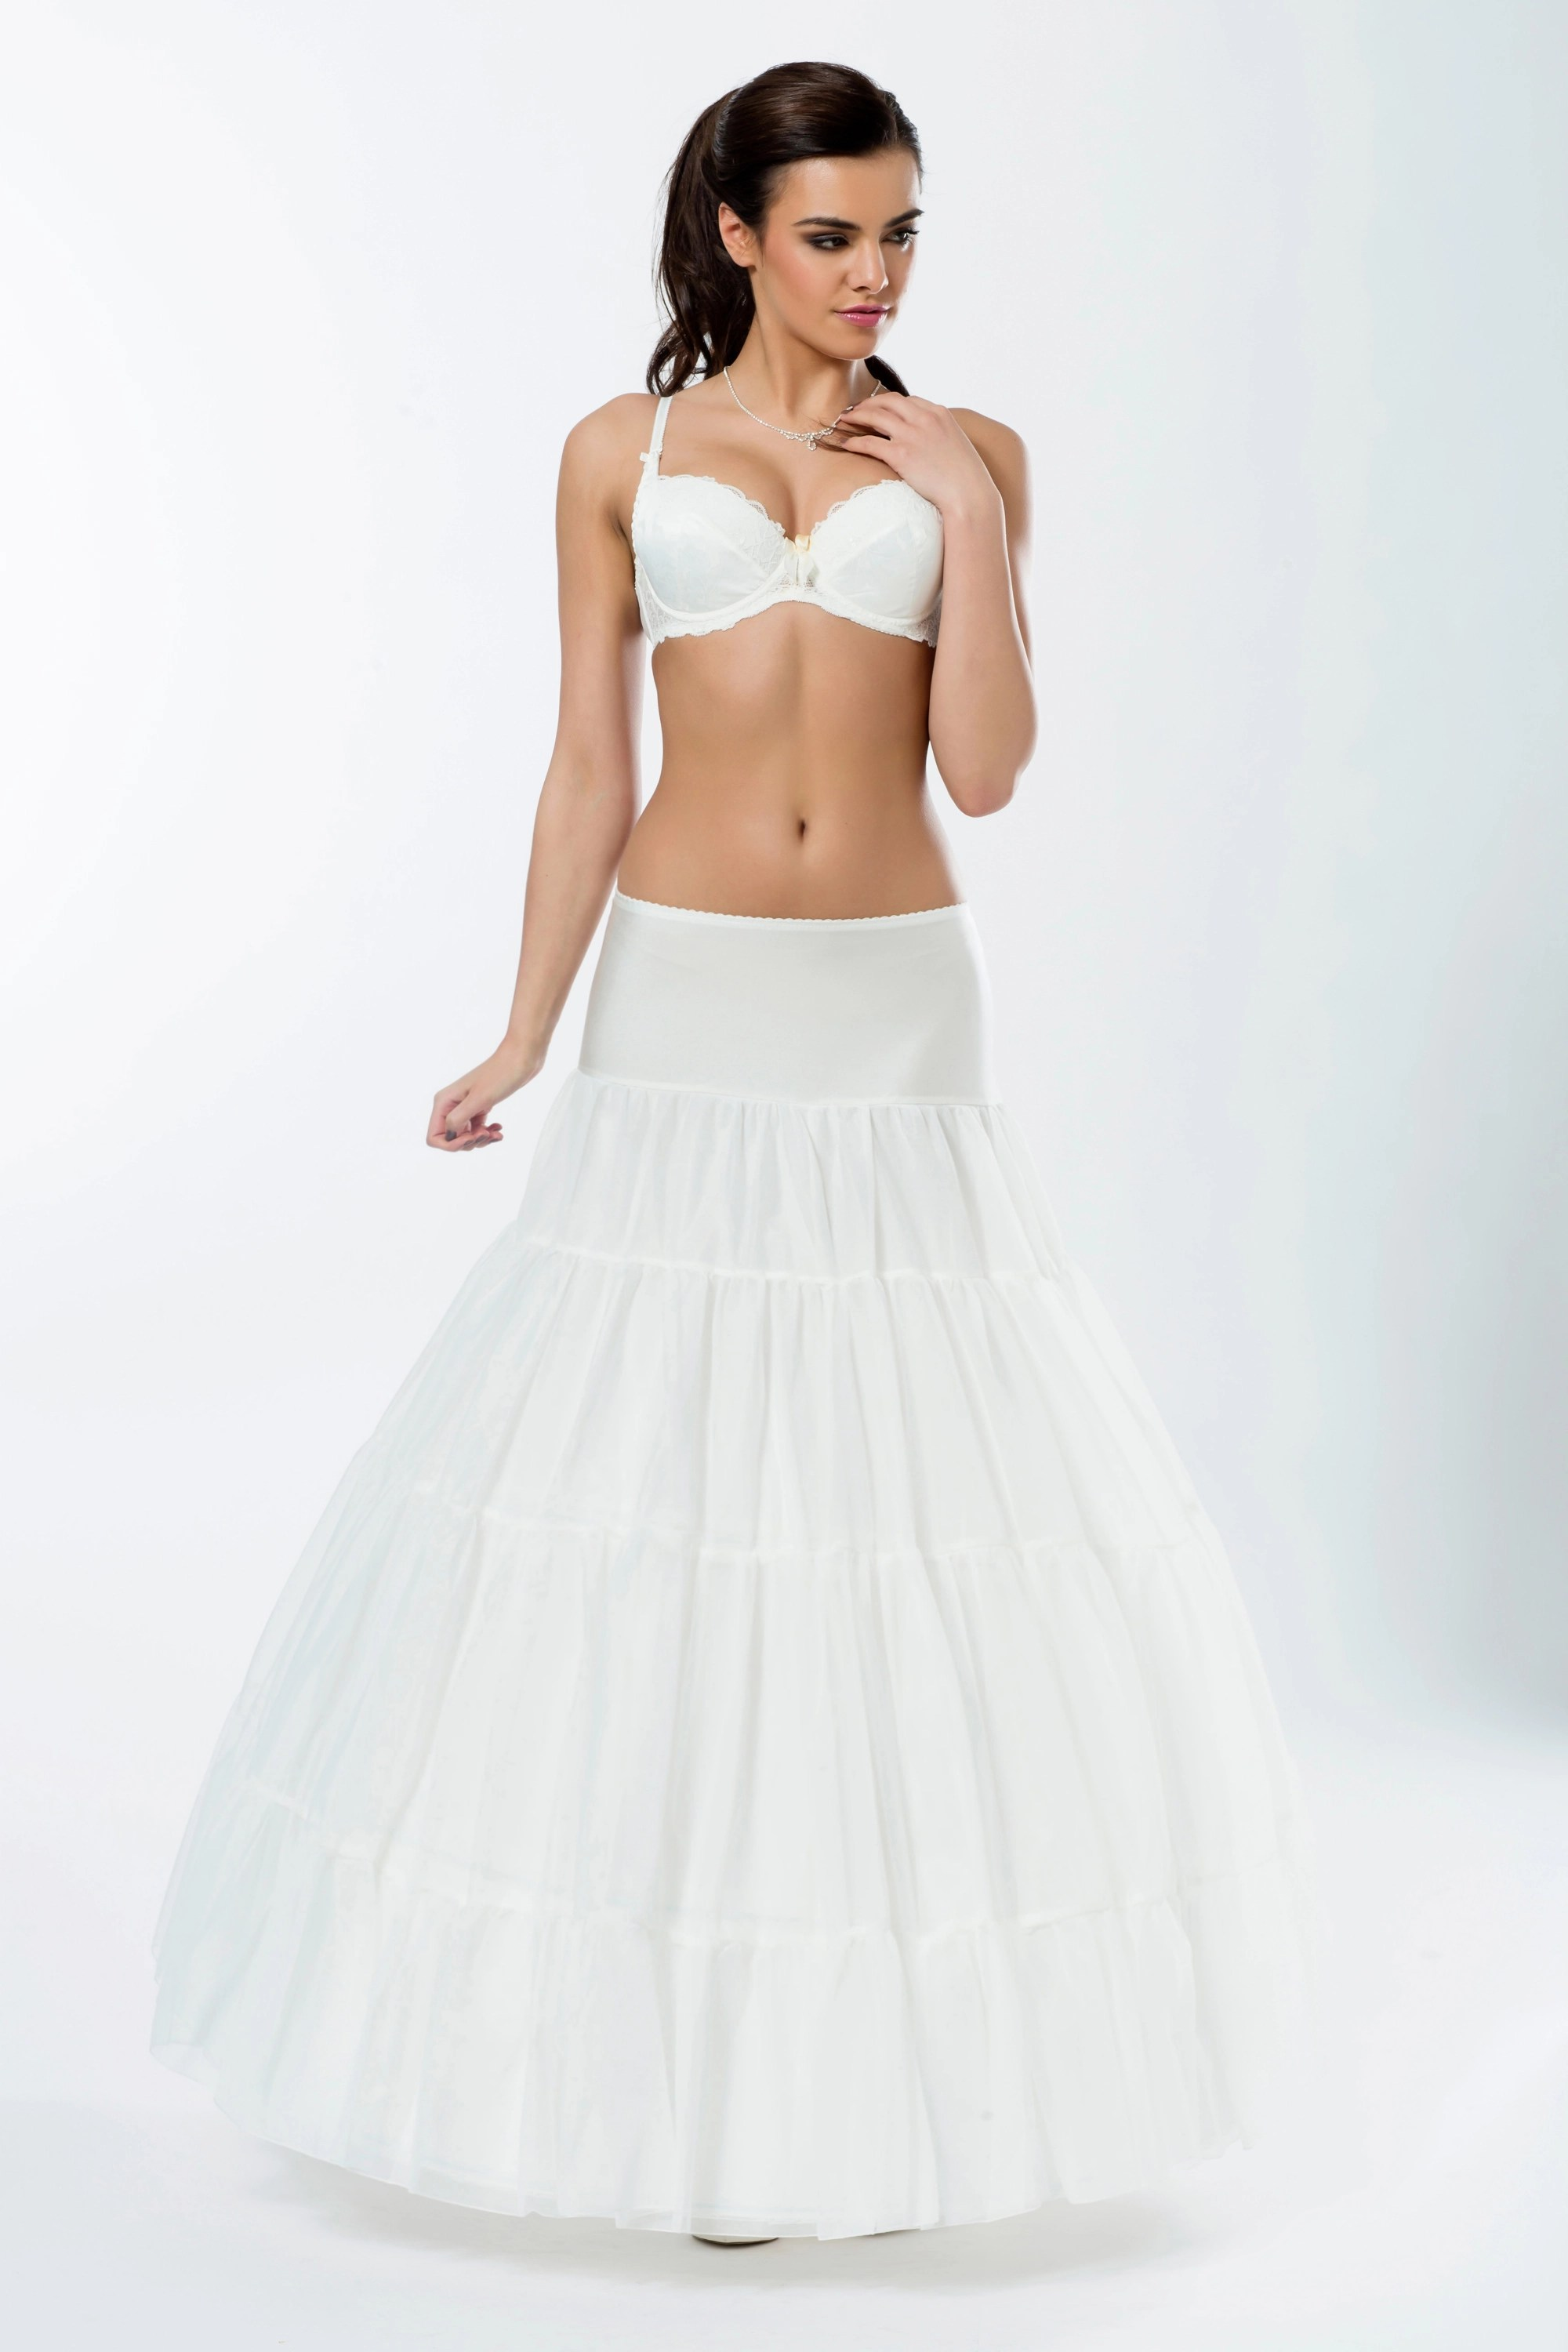 H6-320 BP6-320 full wide ballgown bridal wedding underskirt petticoat